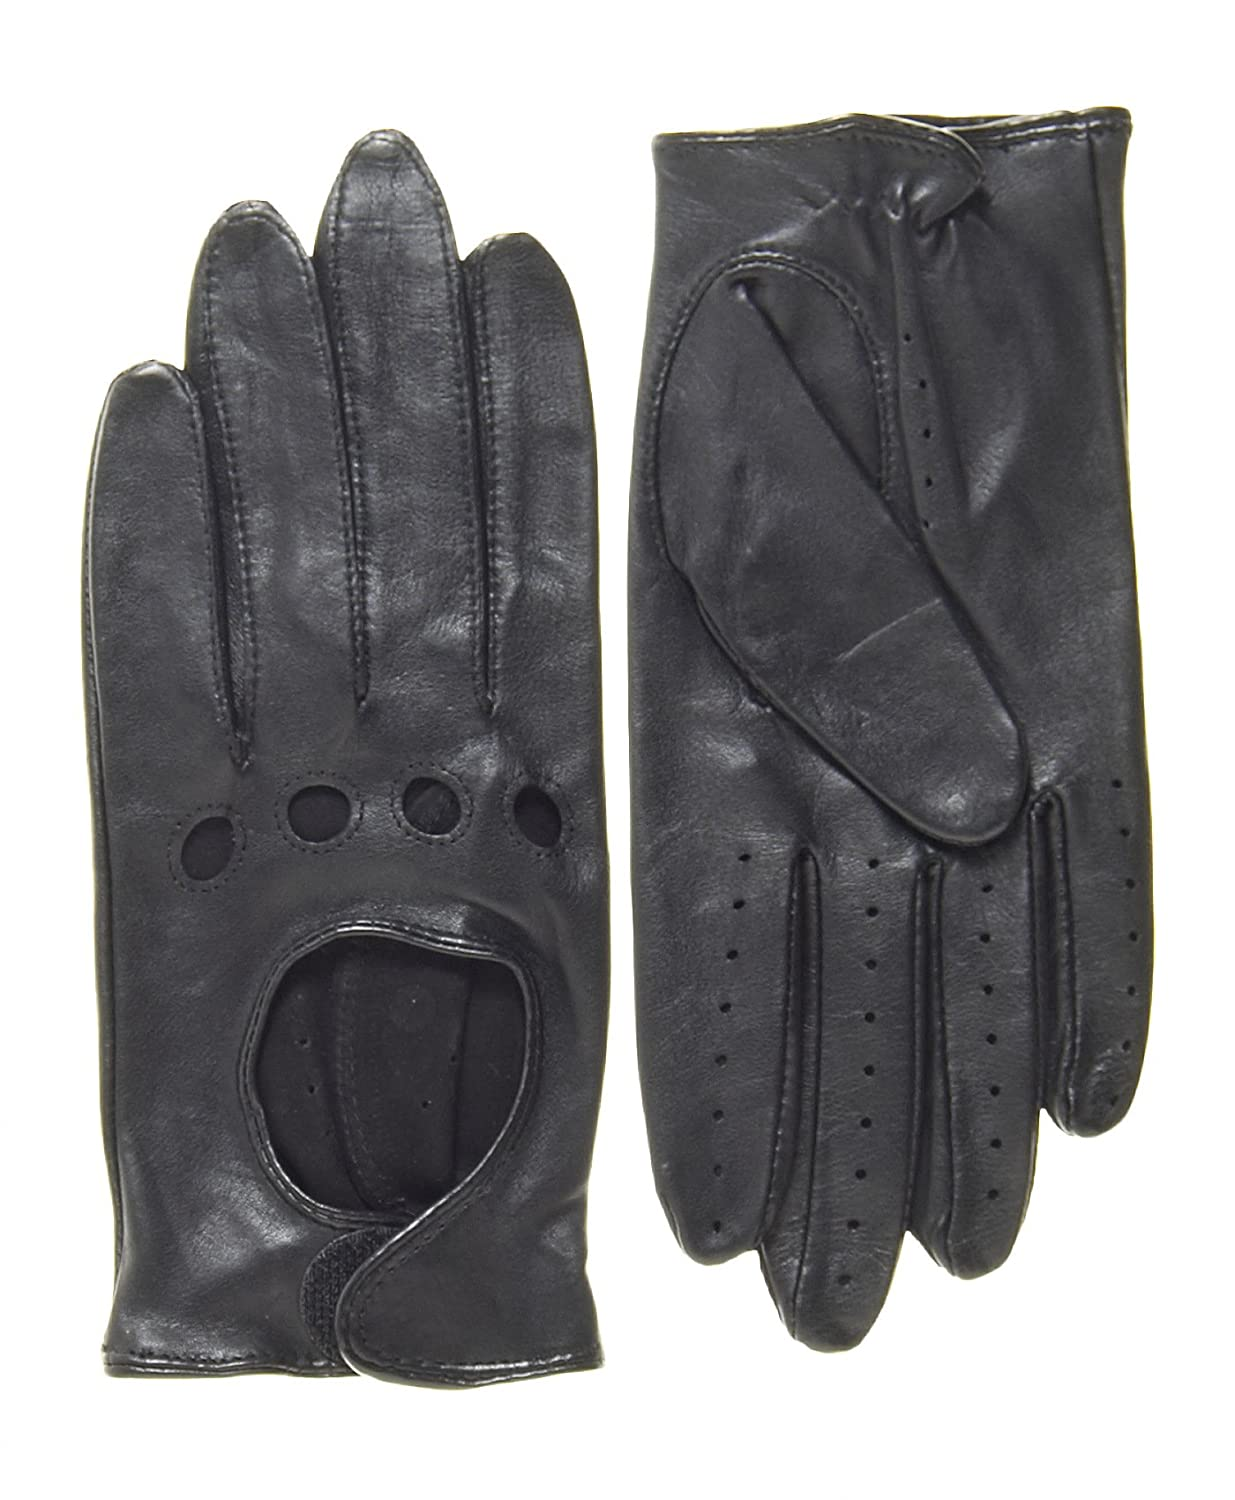 Black leather gloves meaning - Pratt And Hart Women S Womens Leather Driving Gloves Size S Color Black At Amazon Women S Clothing Store Cold Weather Gloves